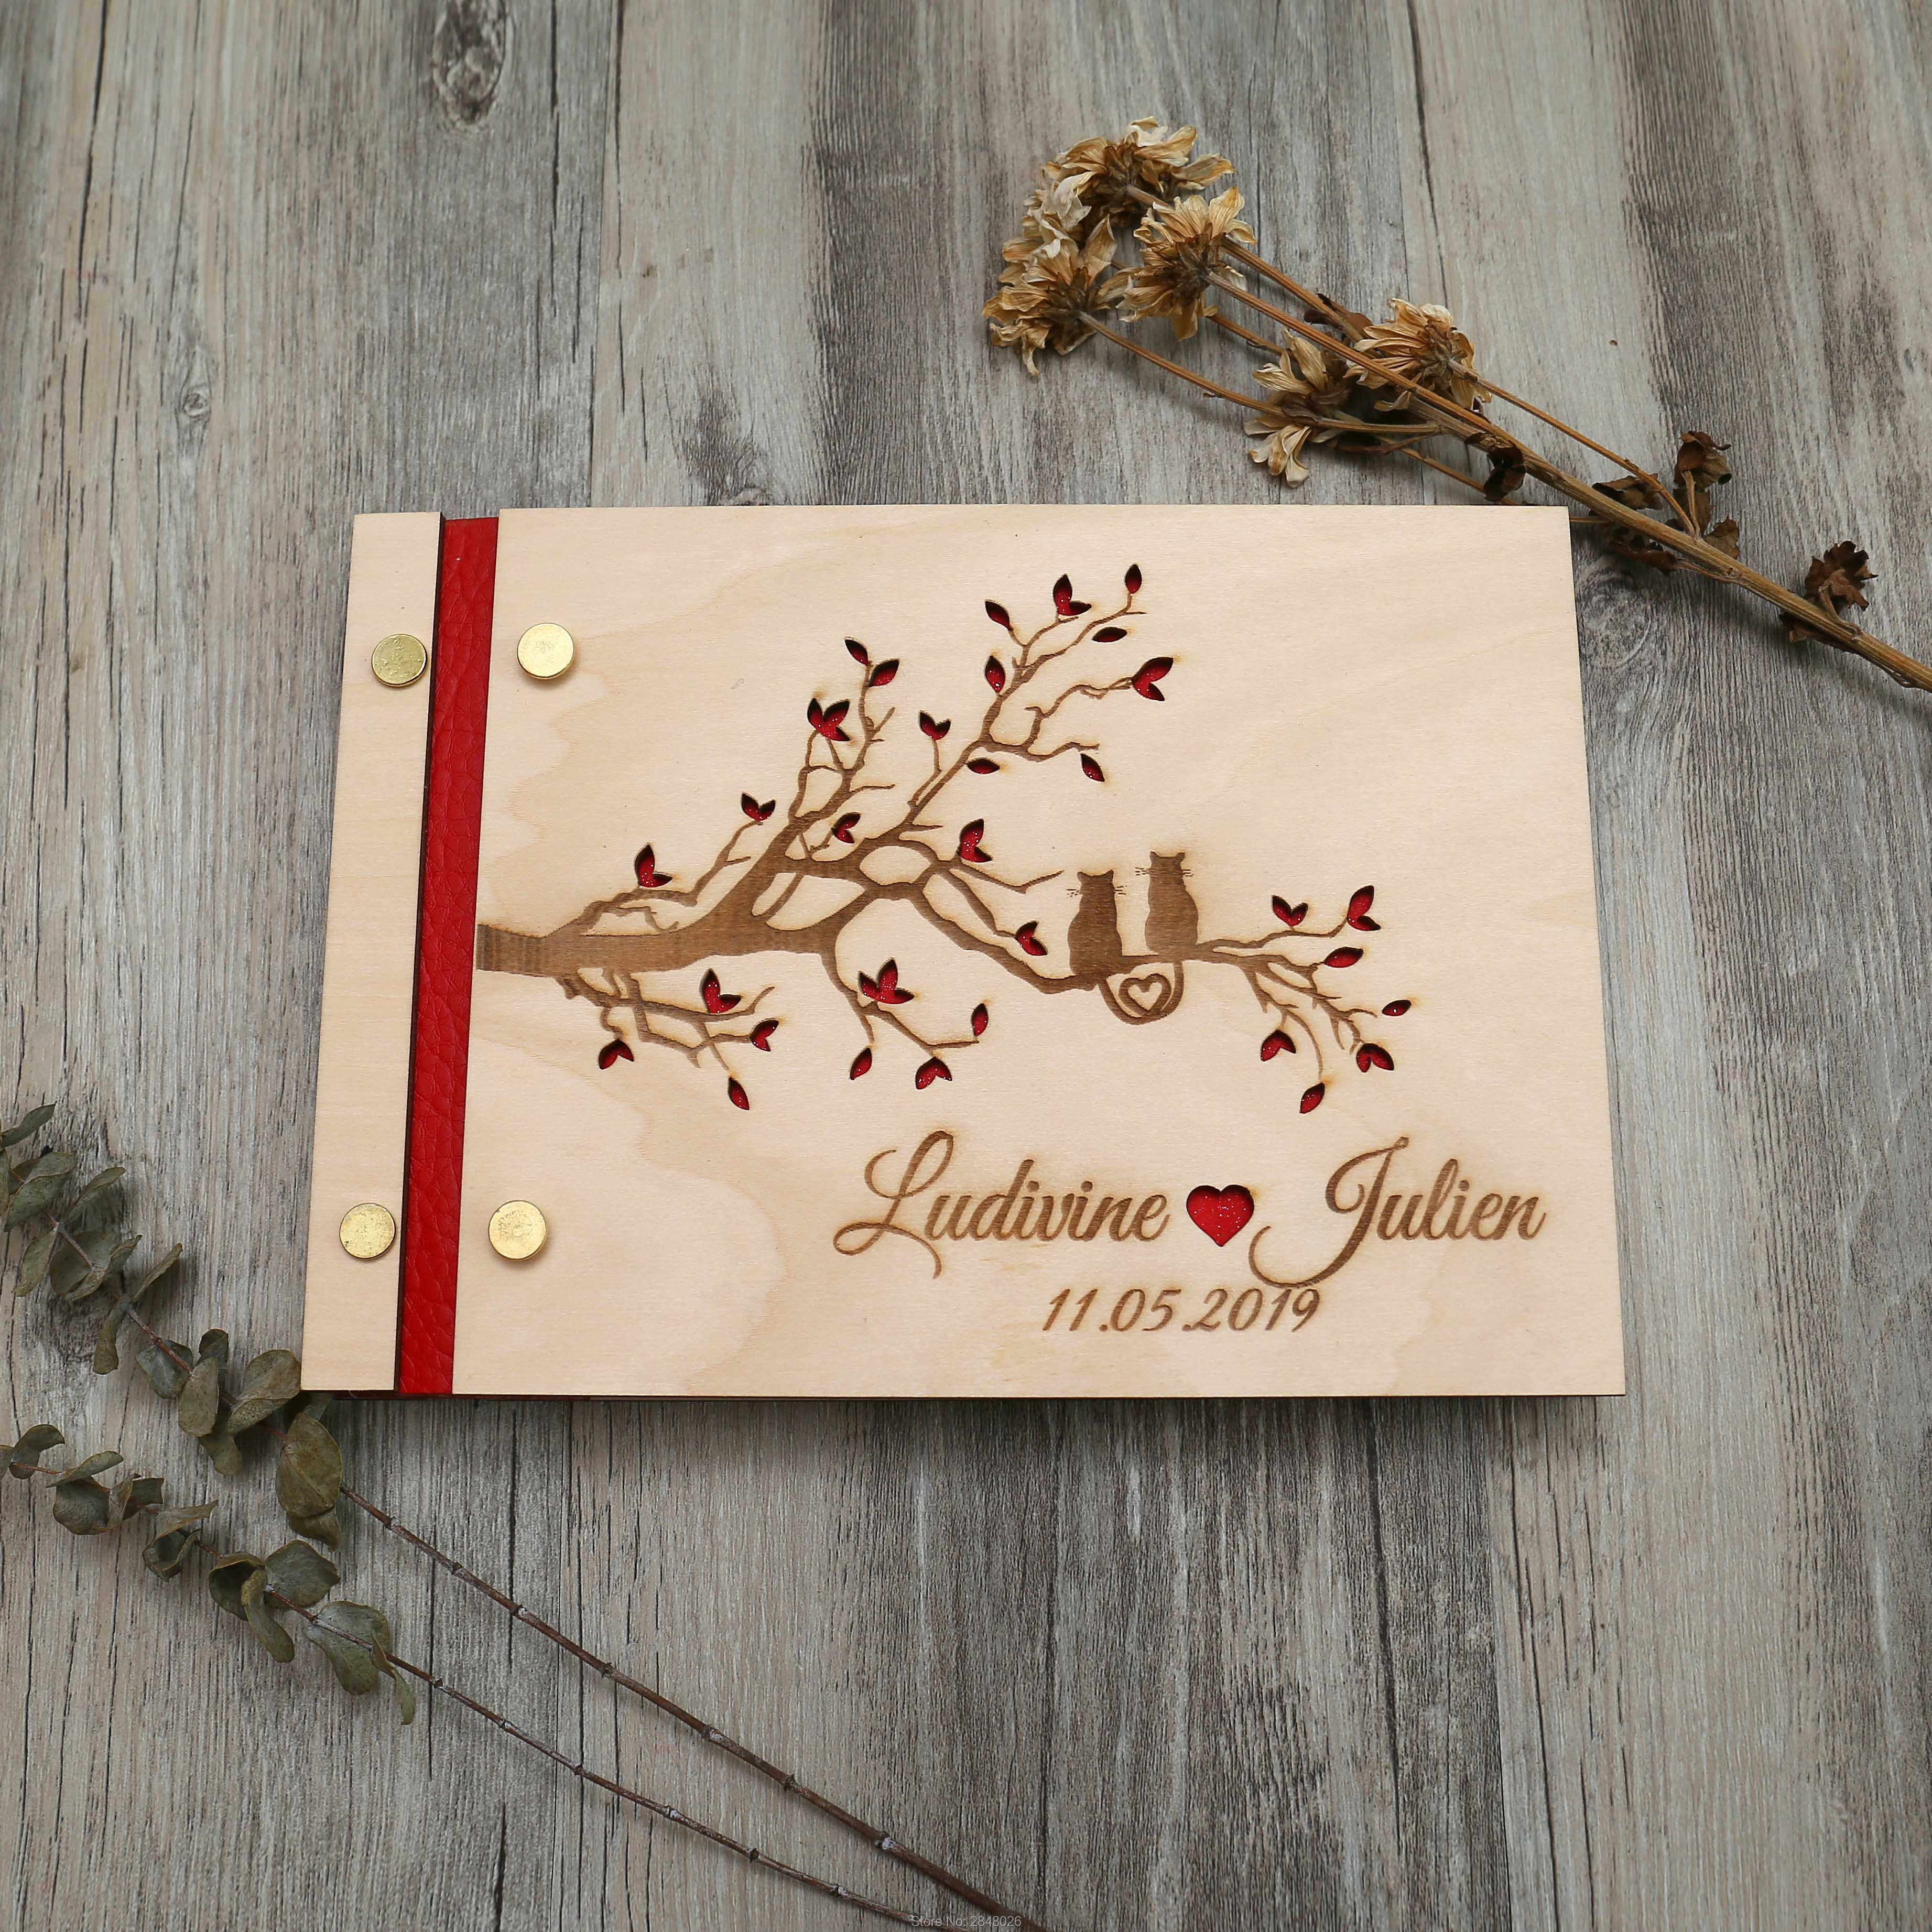 77058ac34312c Detail Feedback Questions about Wedding Guest Book Wood, Butterfly ...